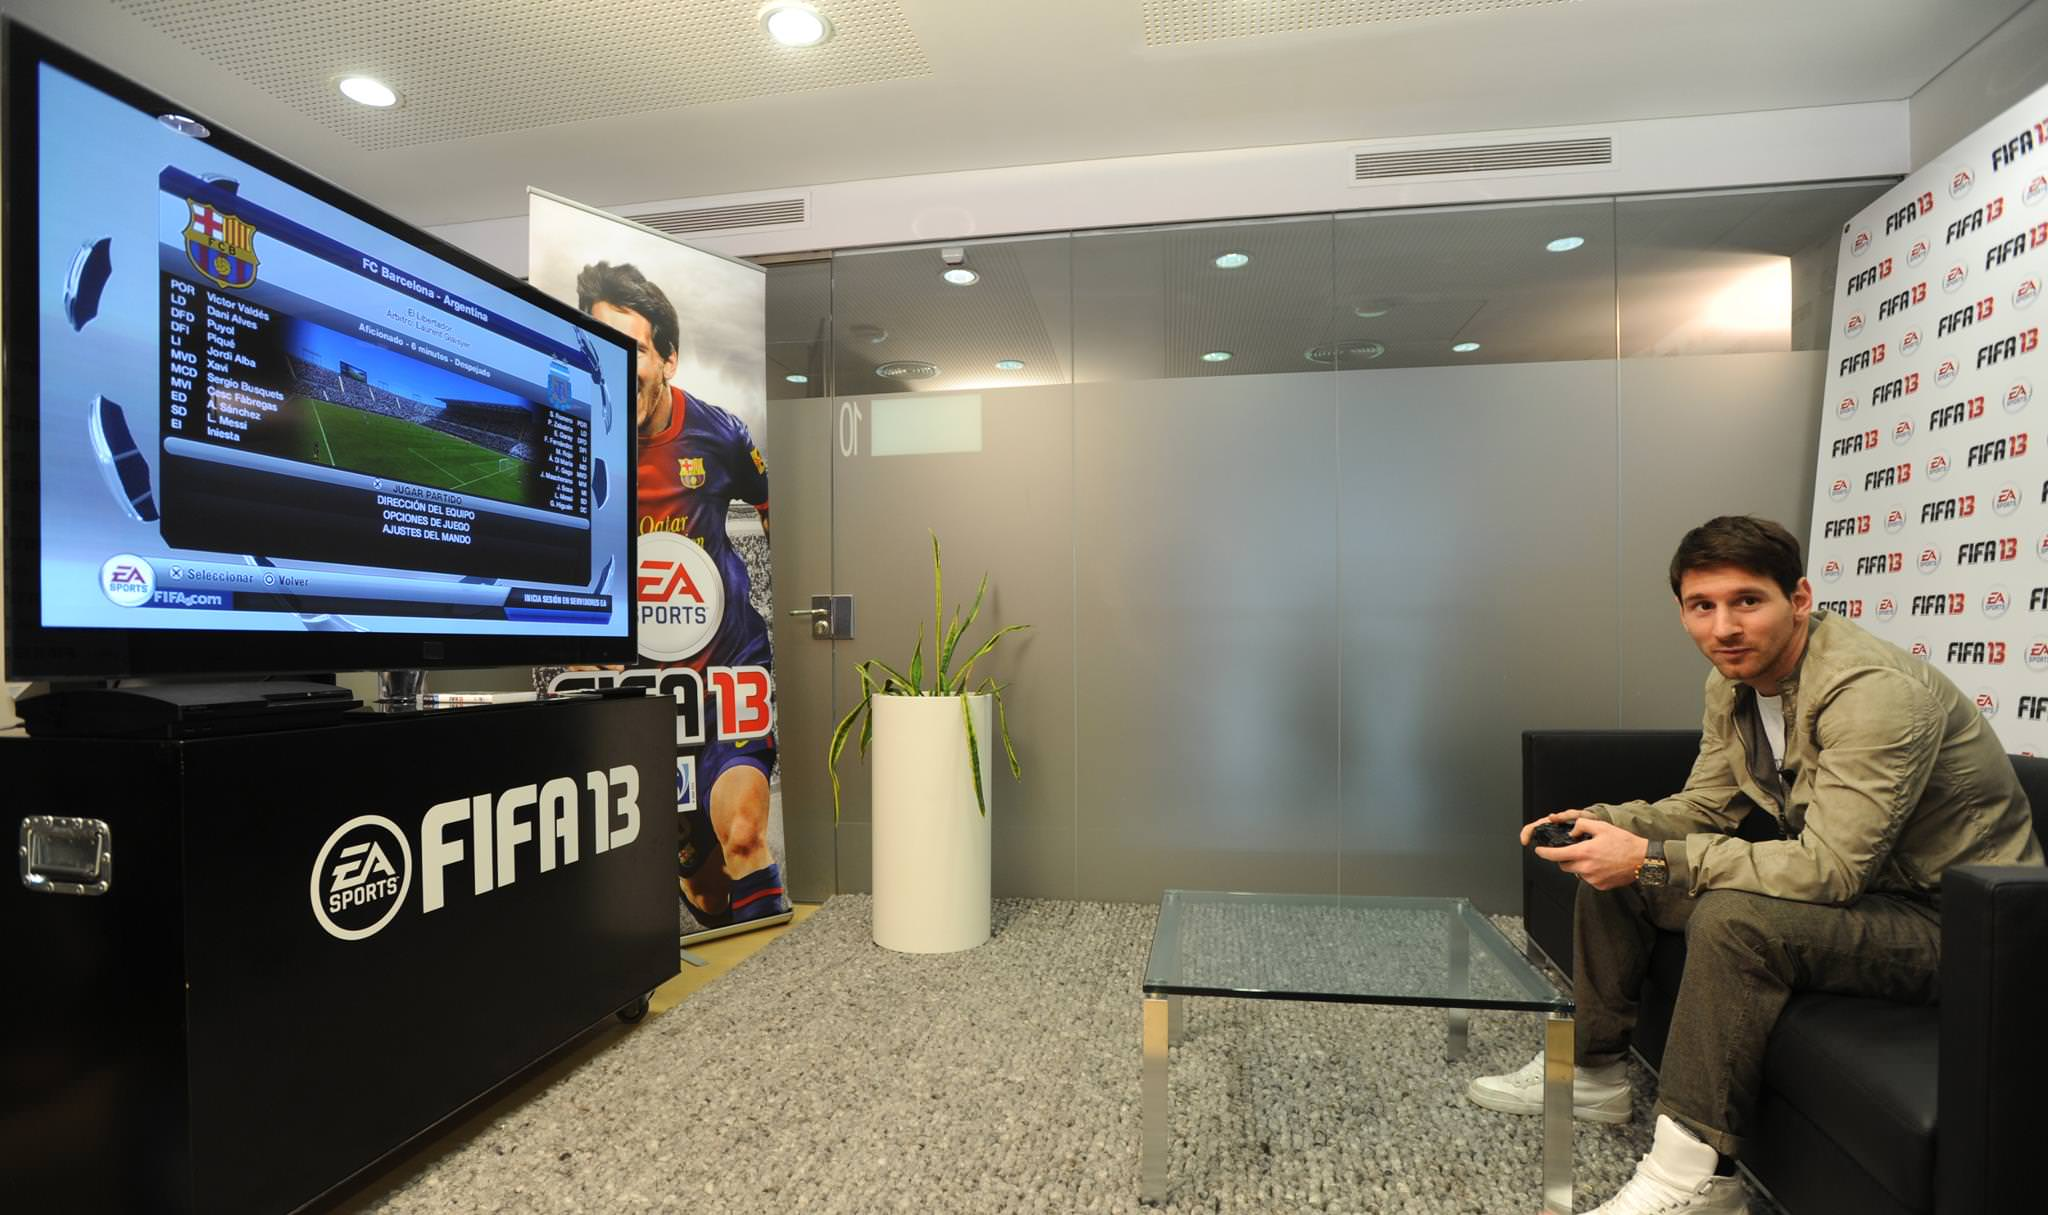 Messi Playing FIFA 13